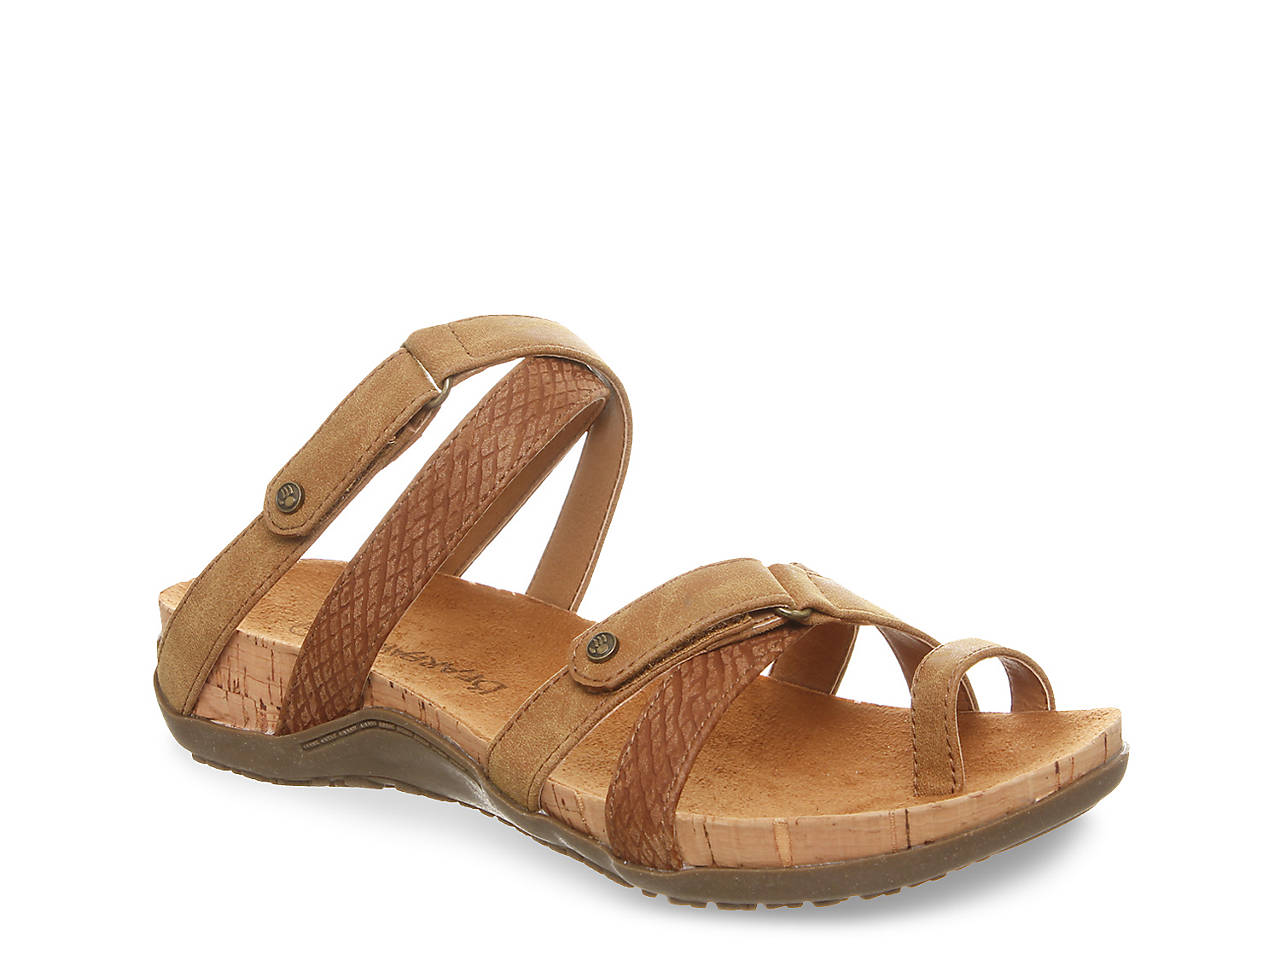 79345de0afaf Bearpaw Nadine Sandal Women s Shoes